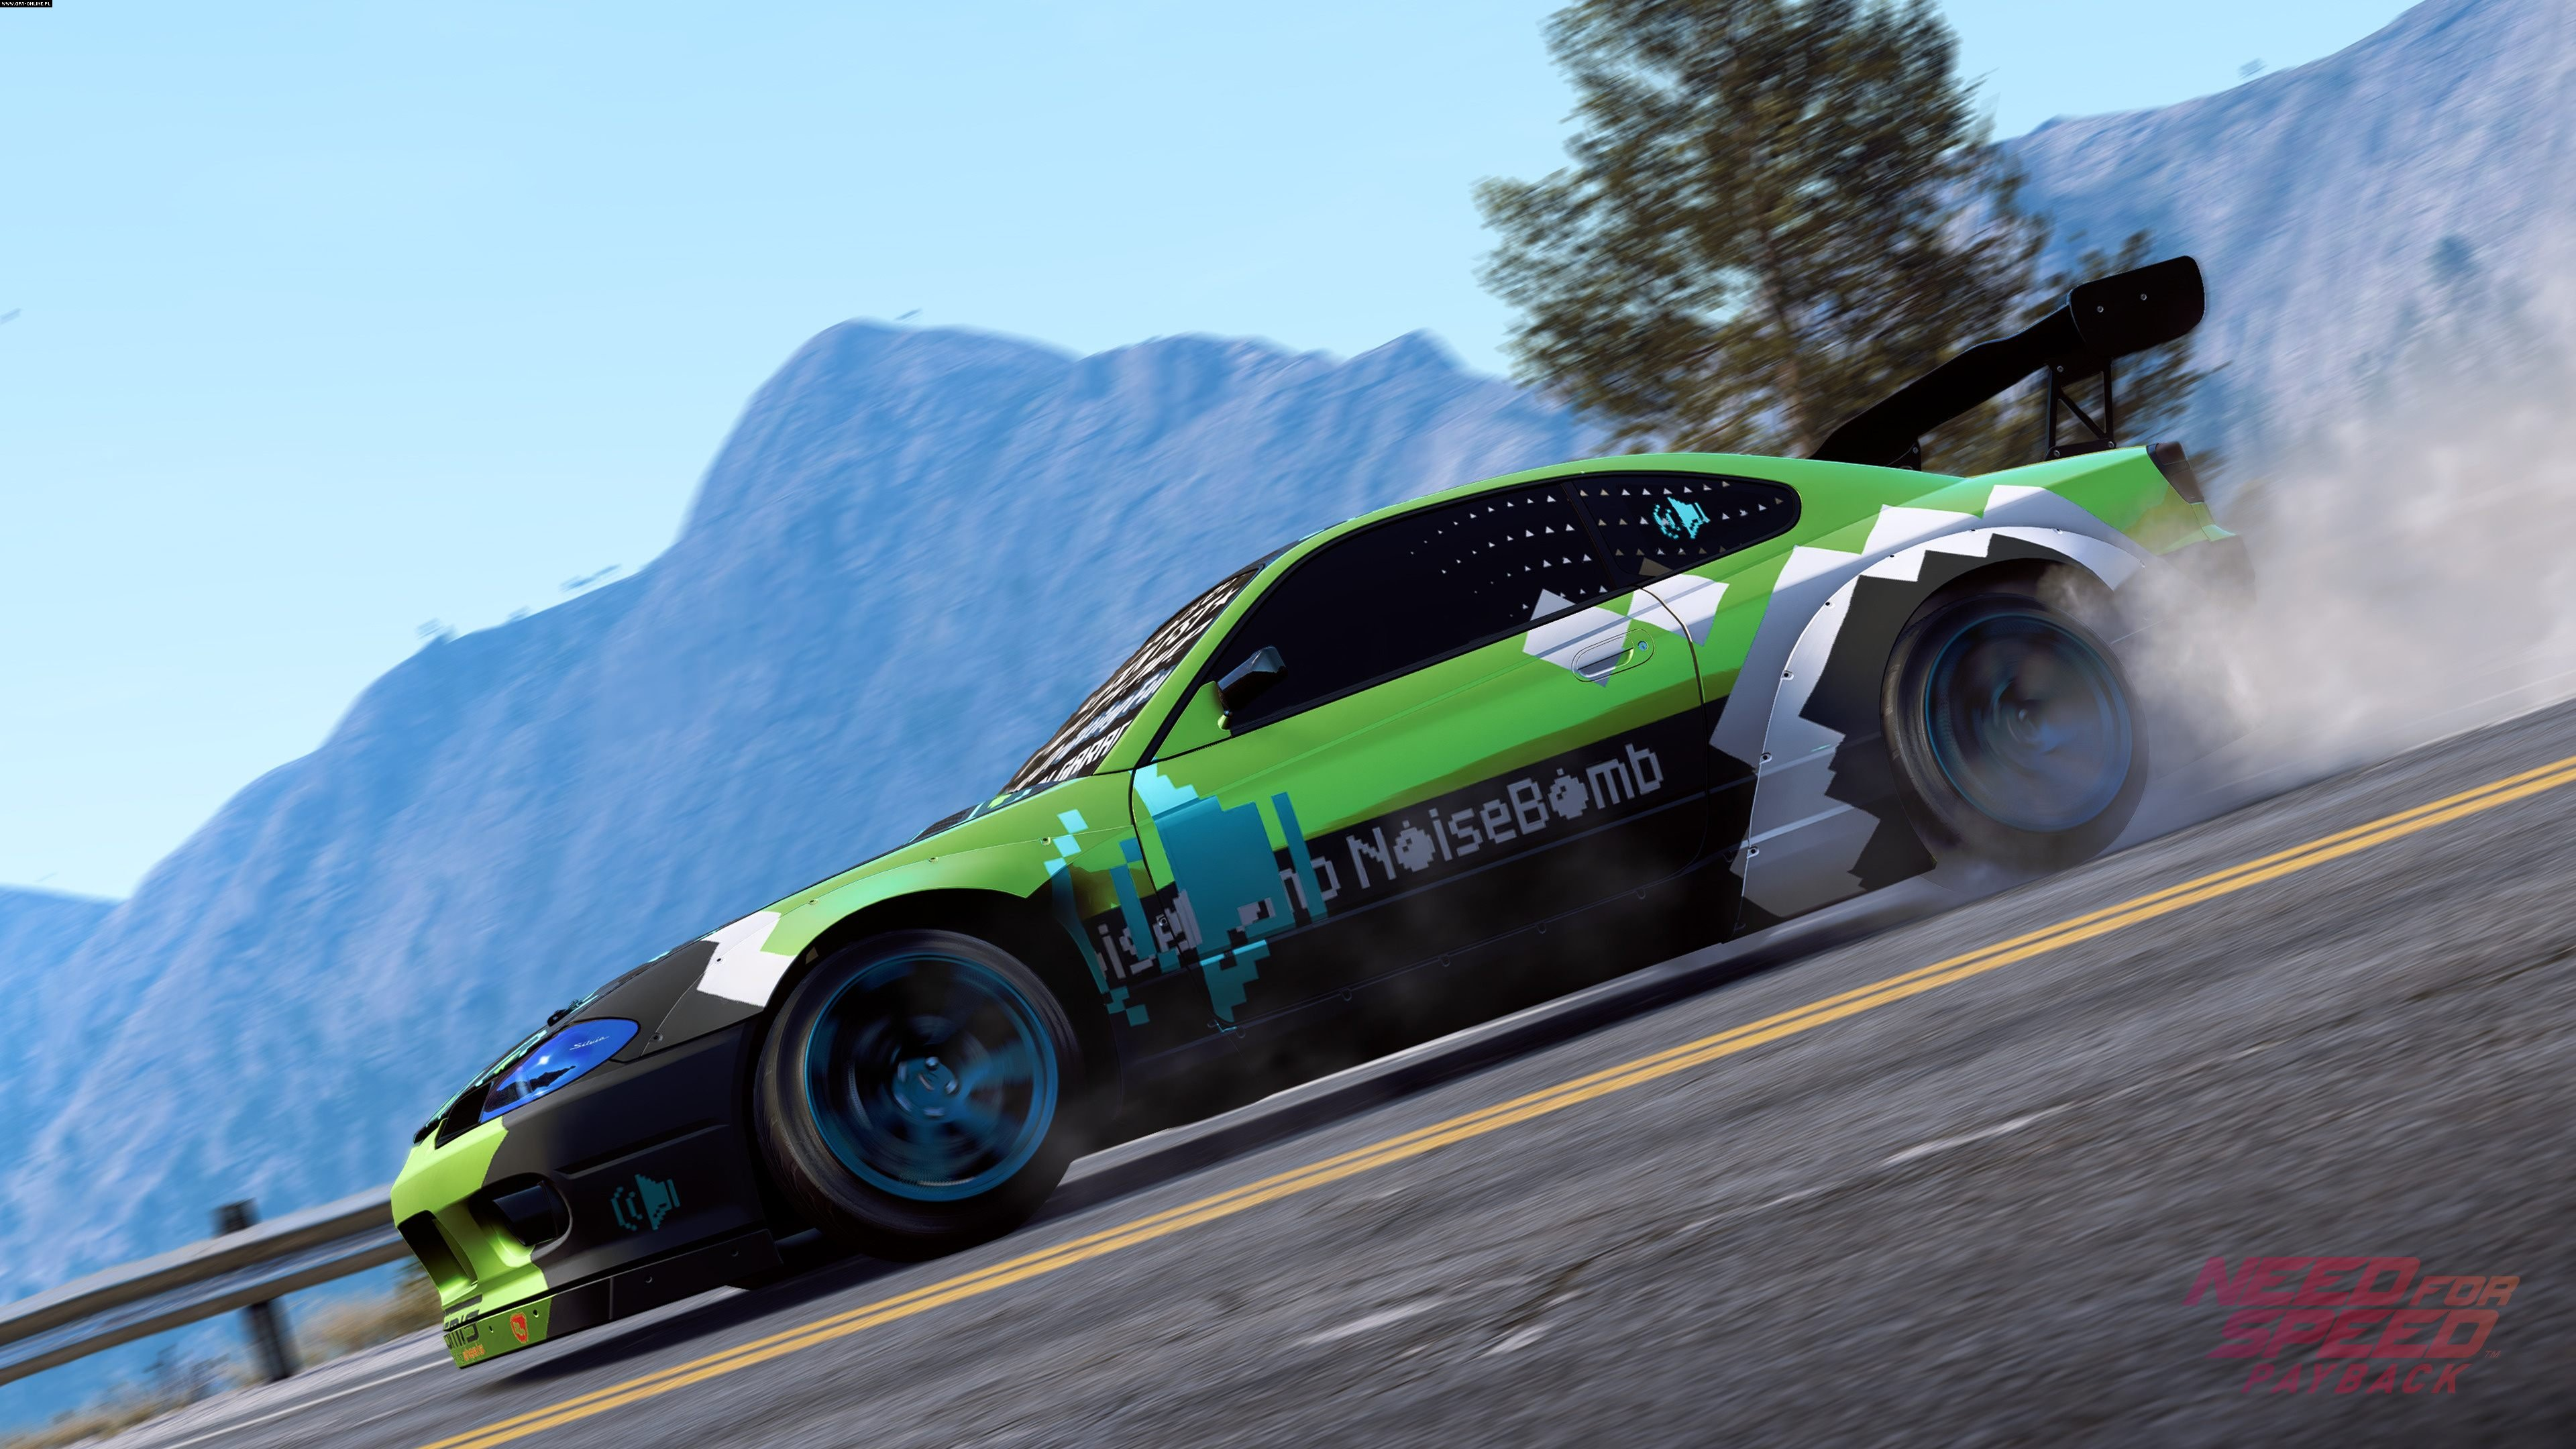 Need for Speed: Payback PC, PS4, XONE Games Image 8/43, Ghost Games, Electronic Arts Inc.